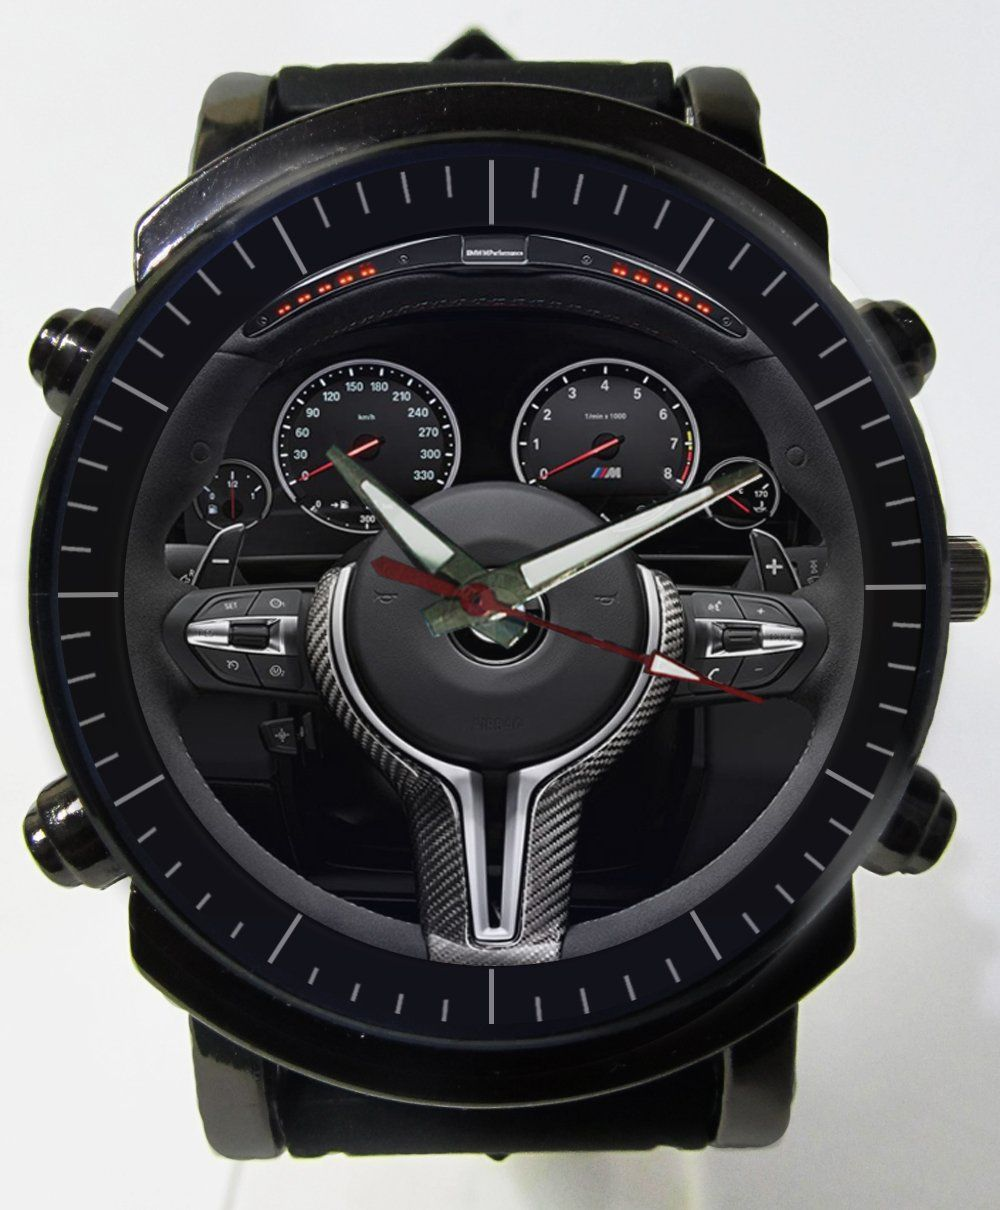 New Awesome BMW Speedometer Z3 Logo Custom Printed Sports Wrist  Watch Amazon Cell Phones   Accessories 8f8f2d33a26